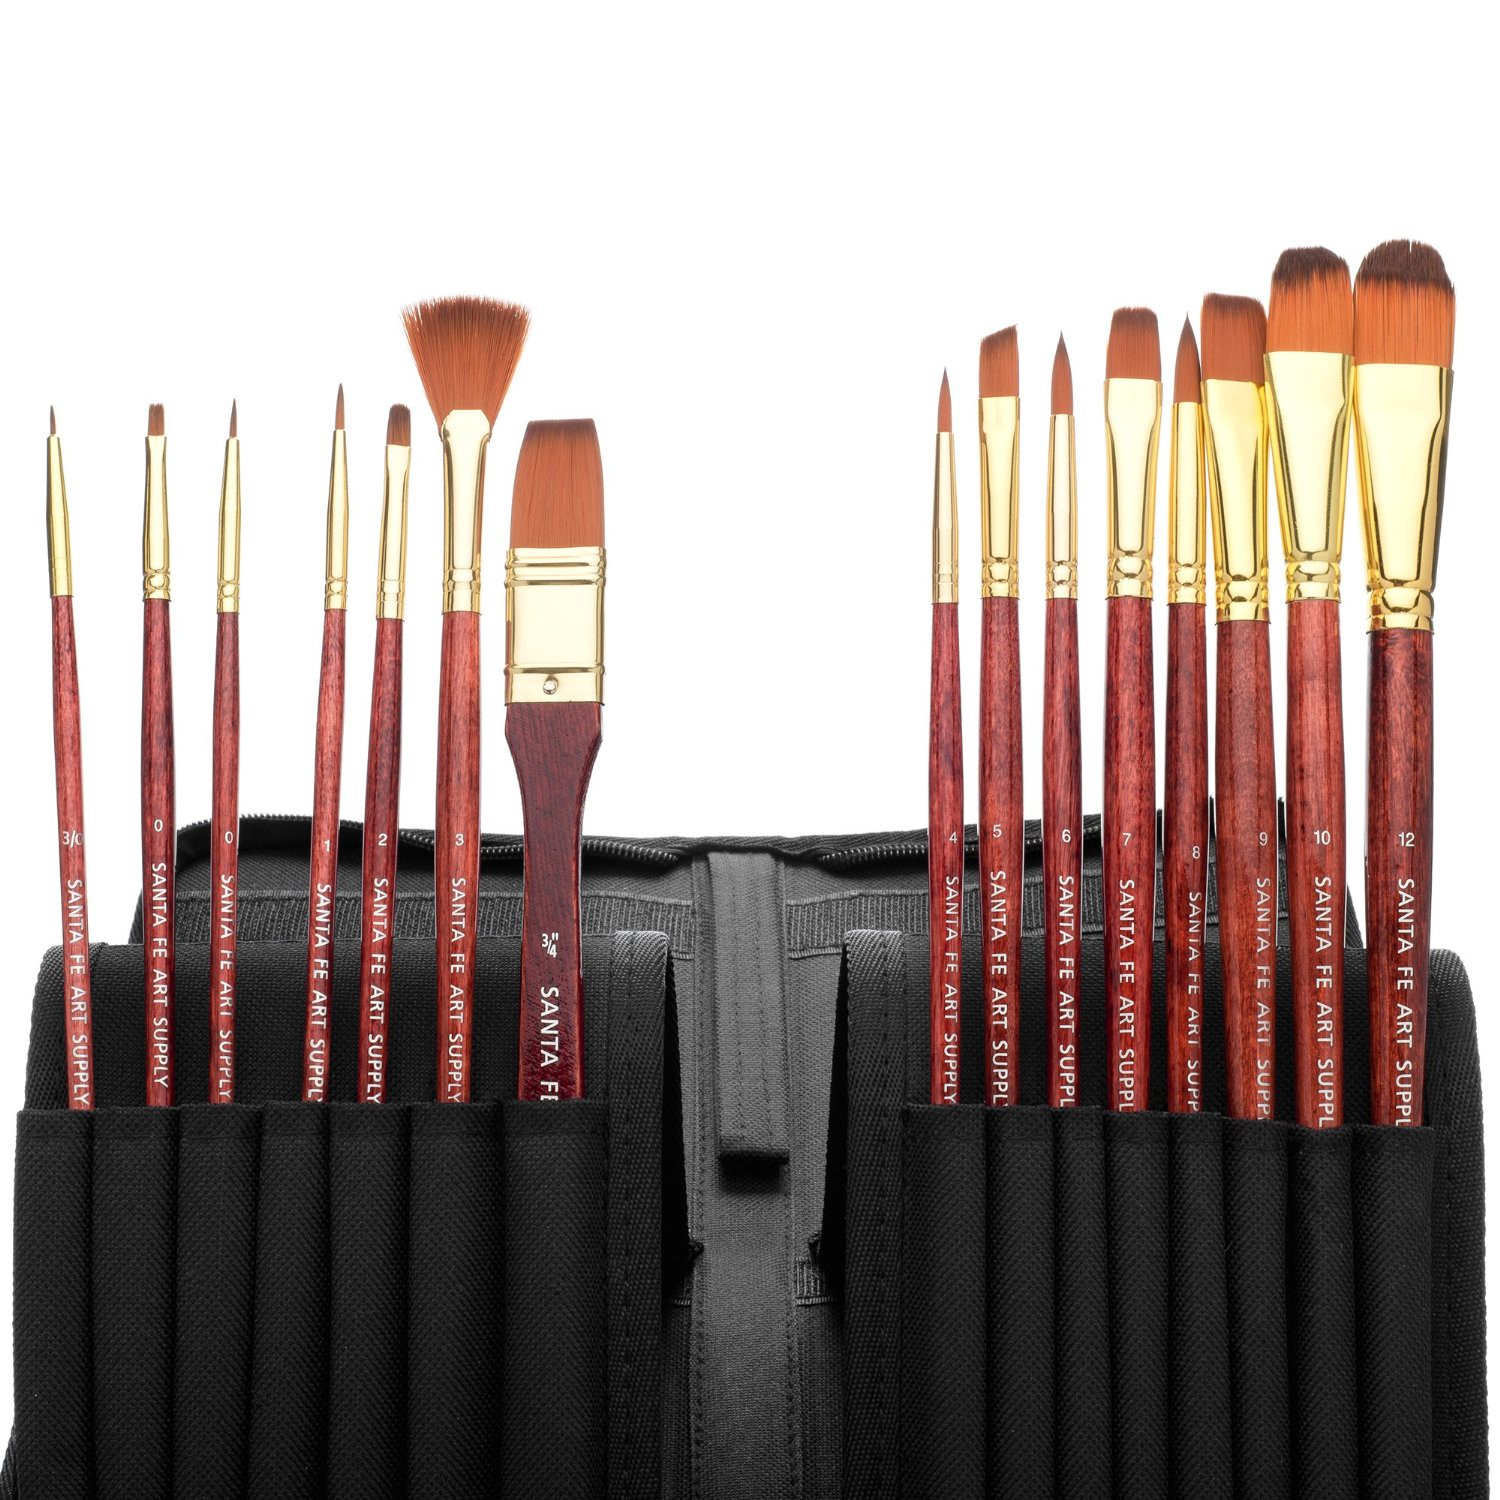 Long Handle Replacement Paint Brushes with Santa Fe Art Supply Best Quality Artist Paintbrush Filbert Size 2 Acrylic Oil Watercolor /& Face Paint